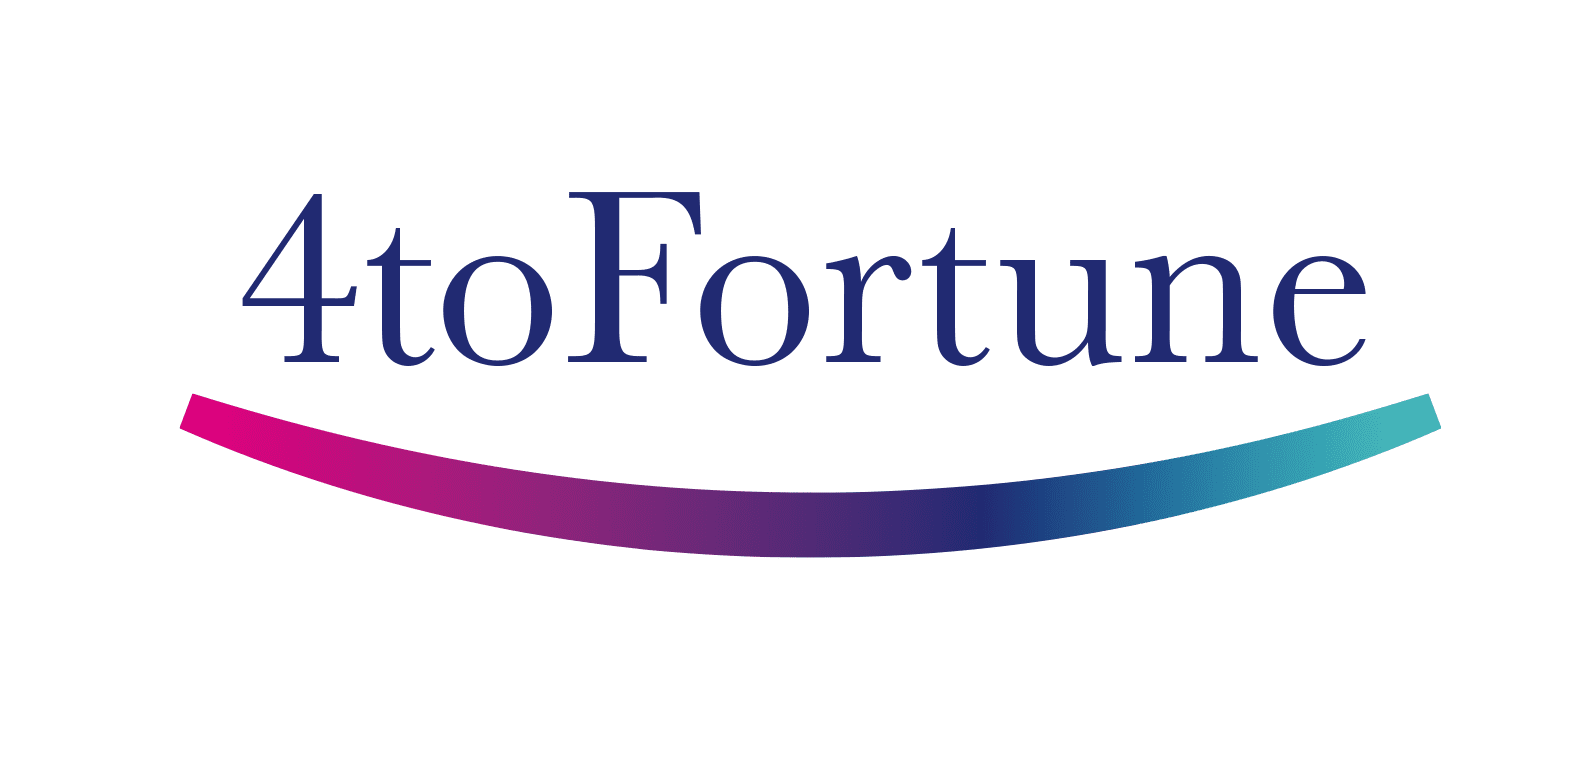 4 to fortune logo